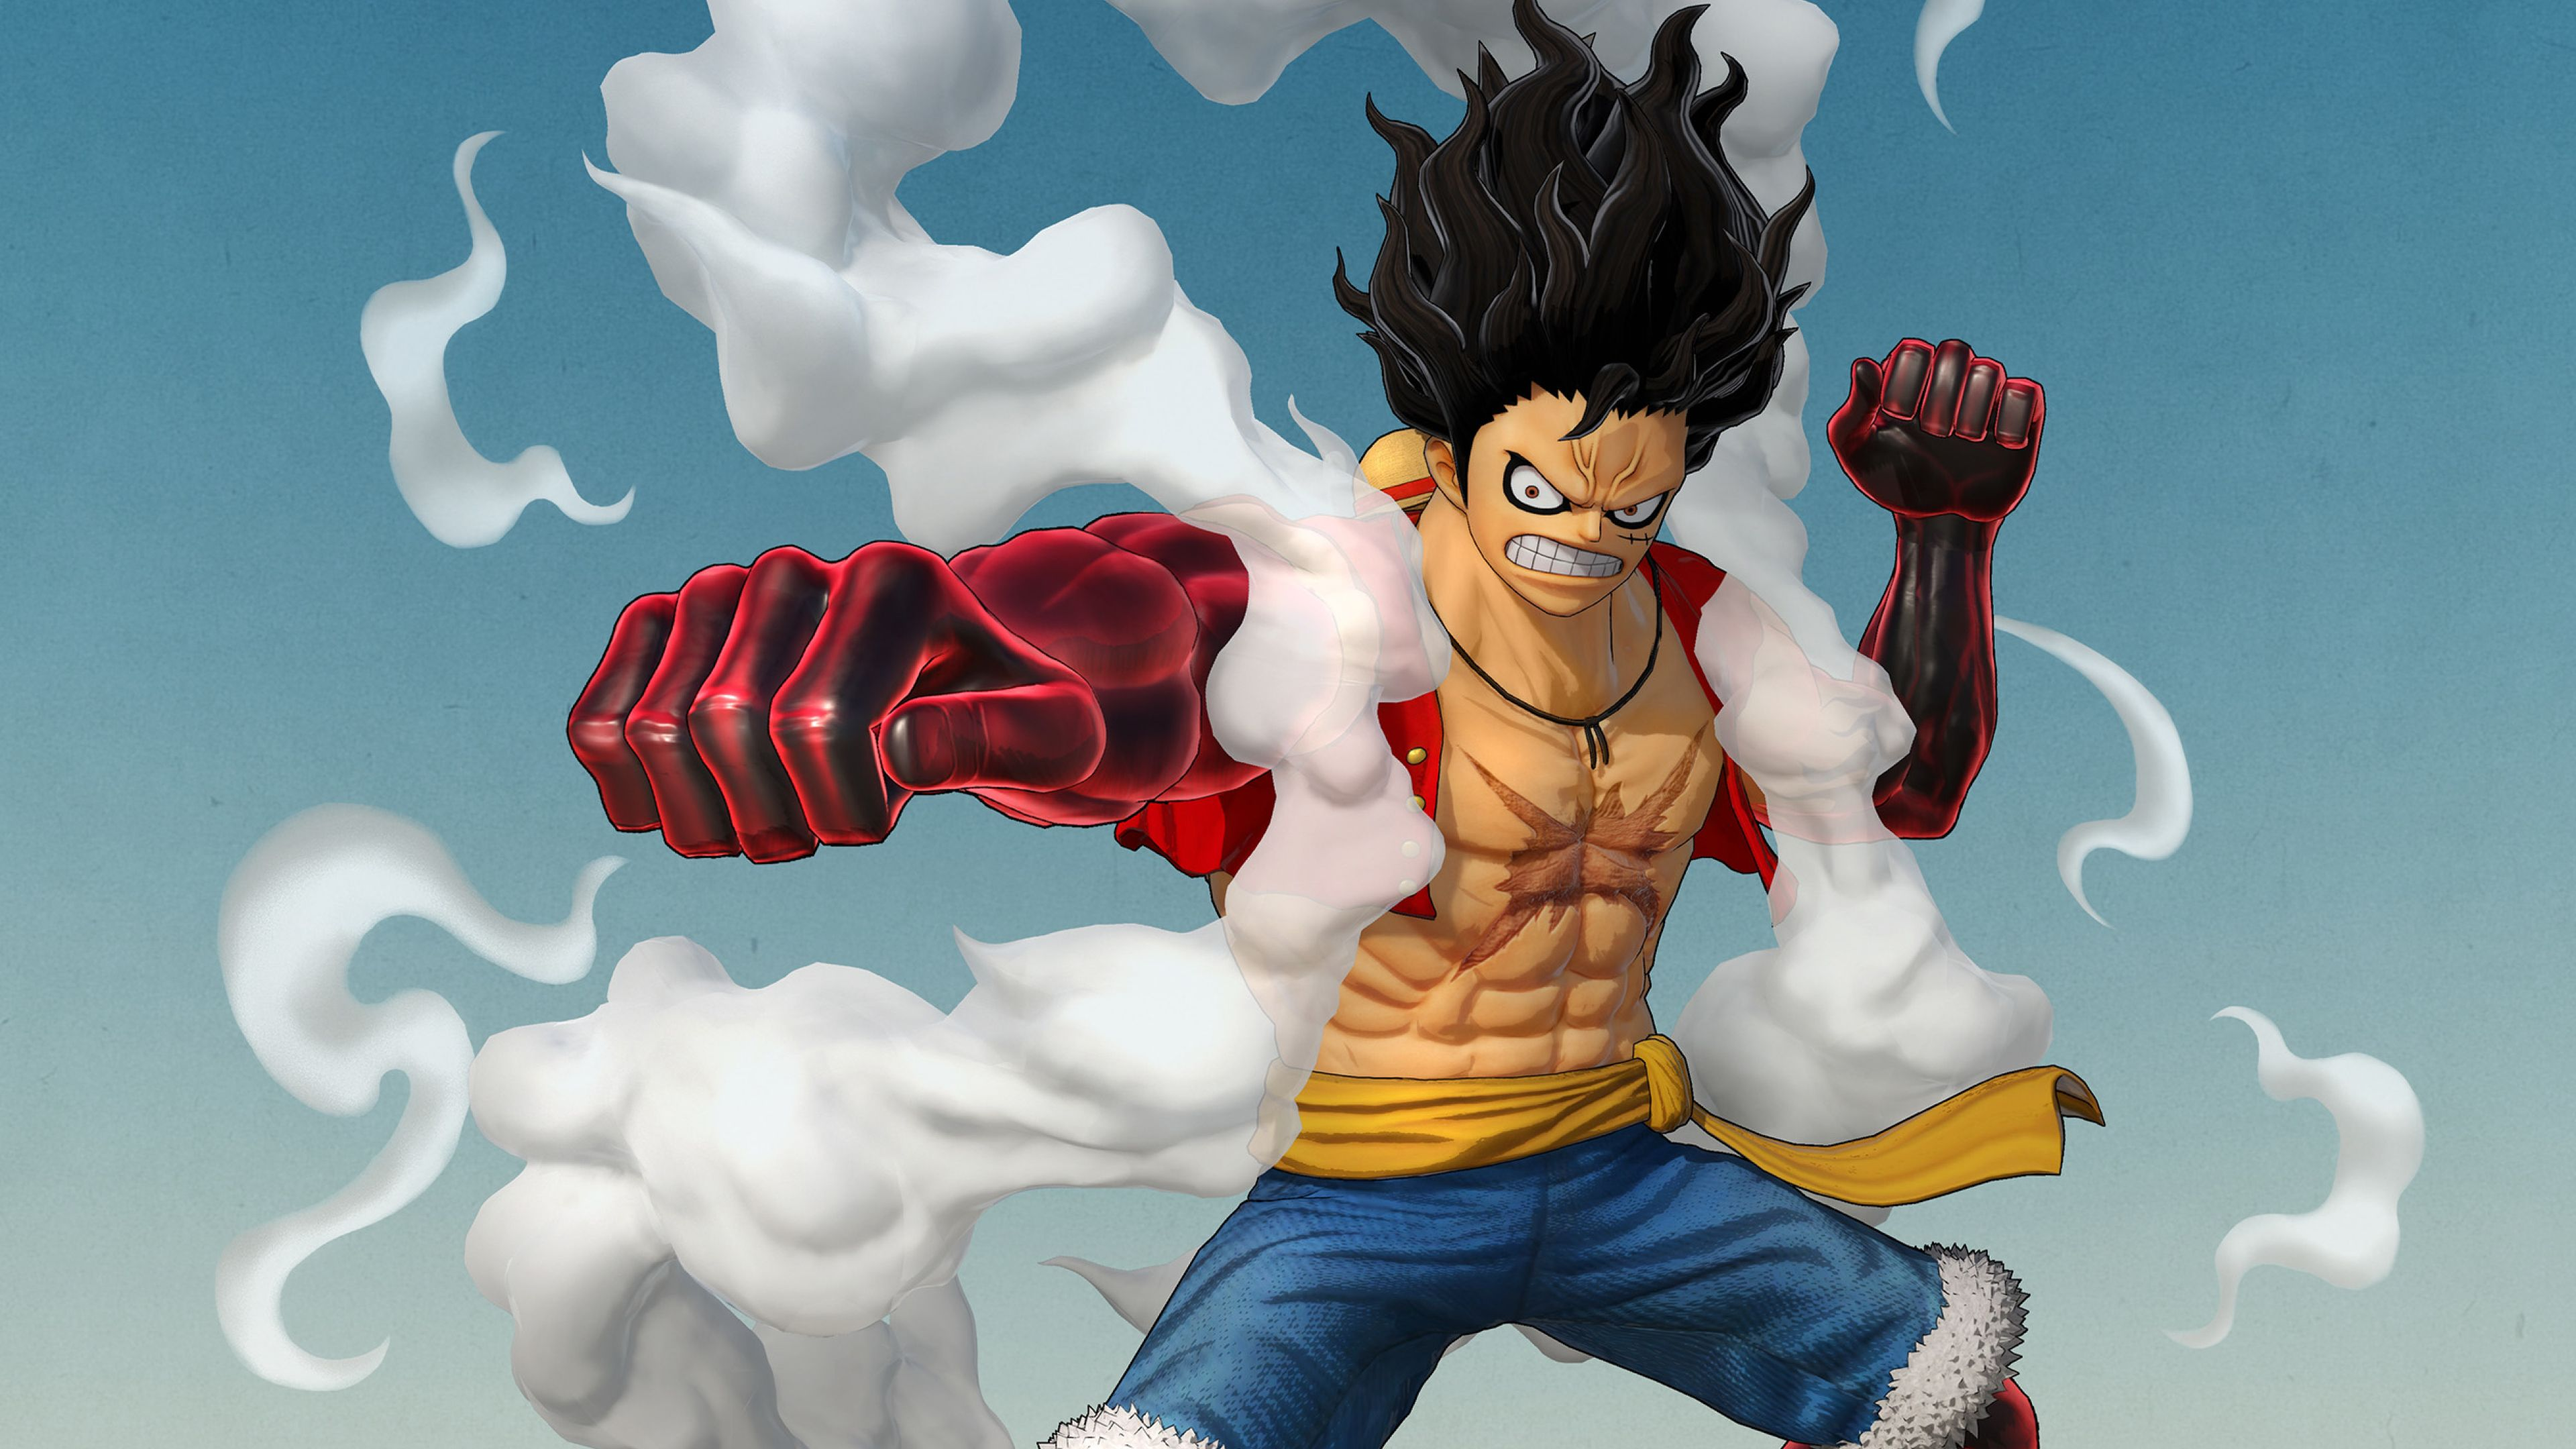 Luffy 4k Wallpapers Top Free Luffy 4k Backgrounds Wallpaperaccess